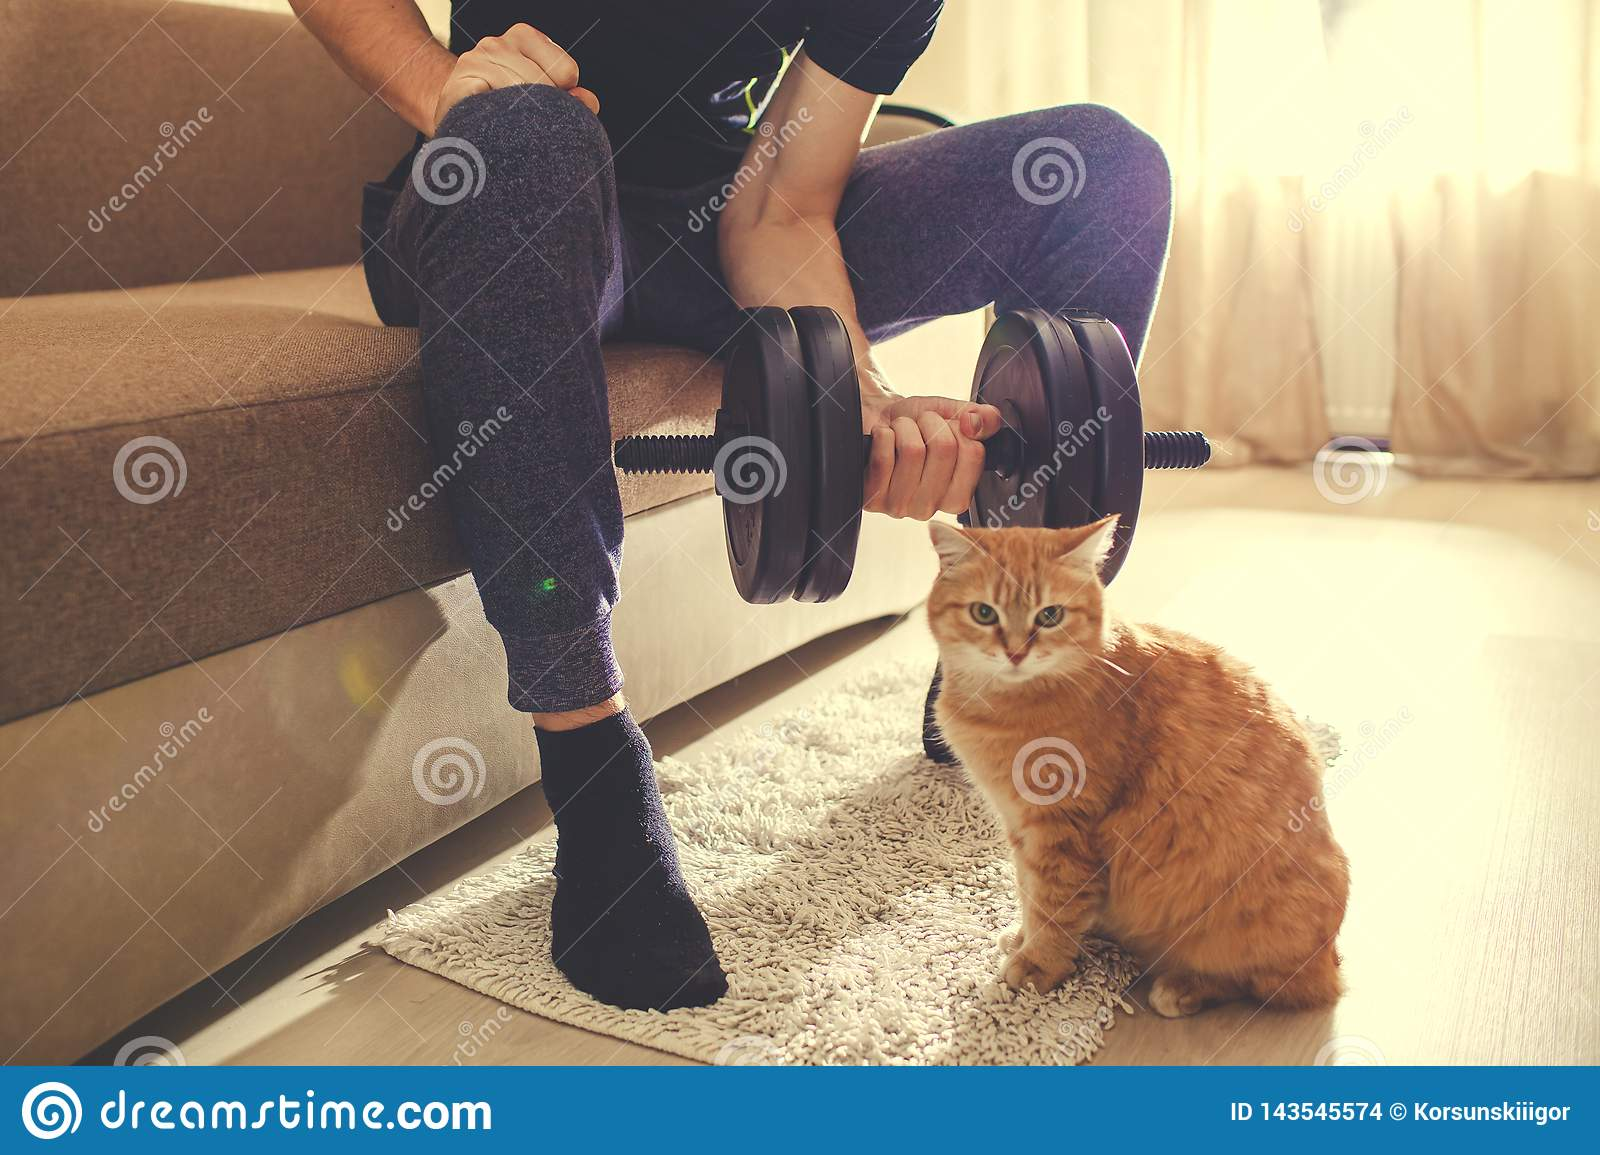 A man goes in for sports at home with dumbbells with a cat